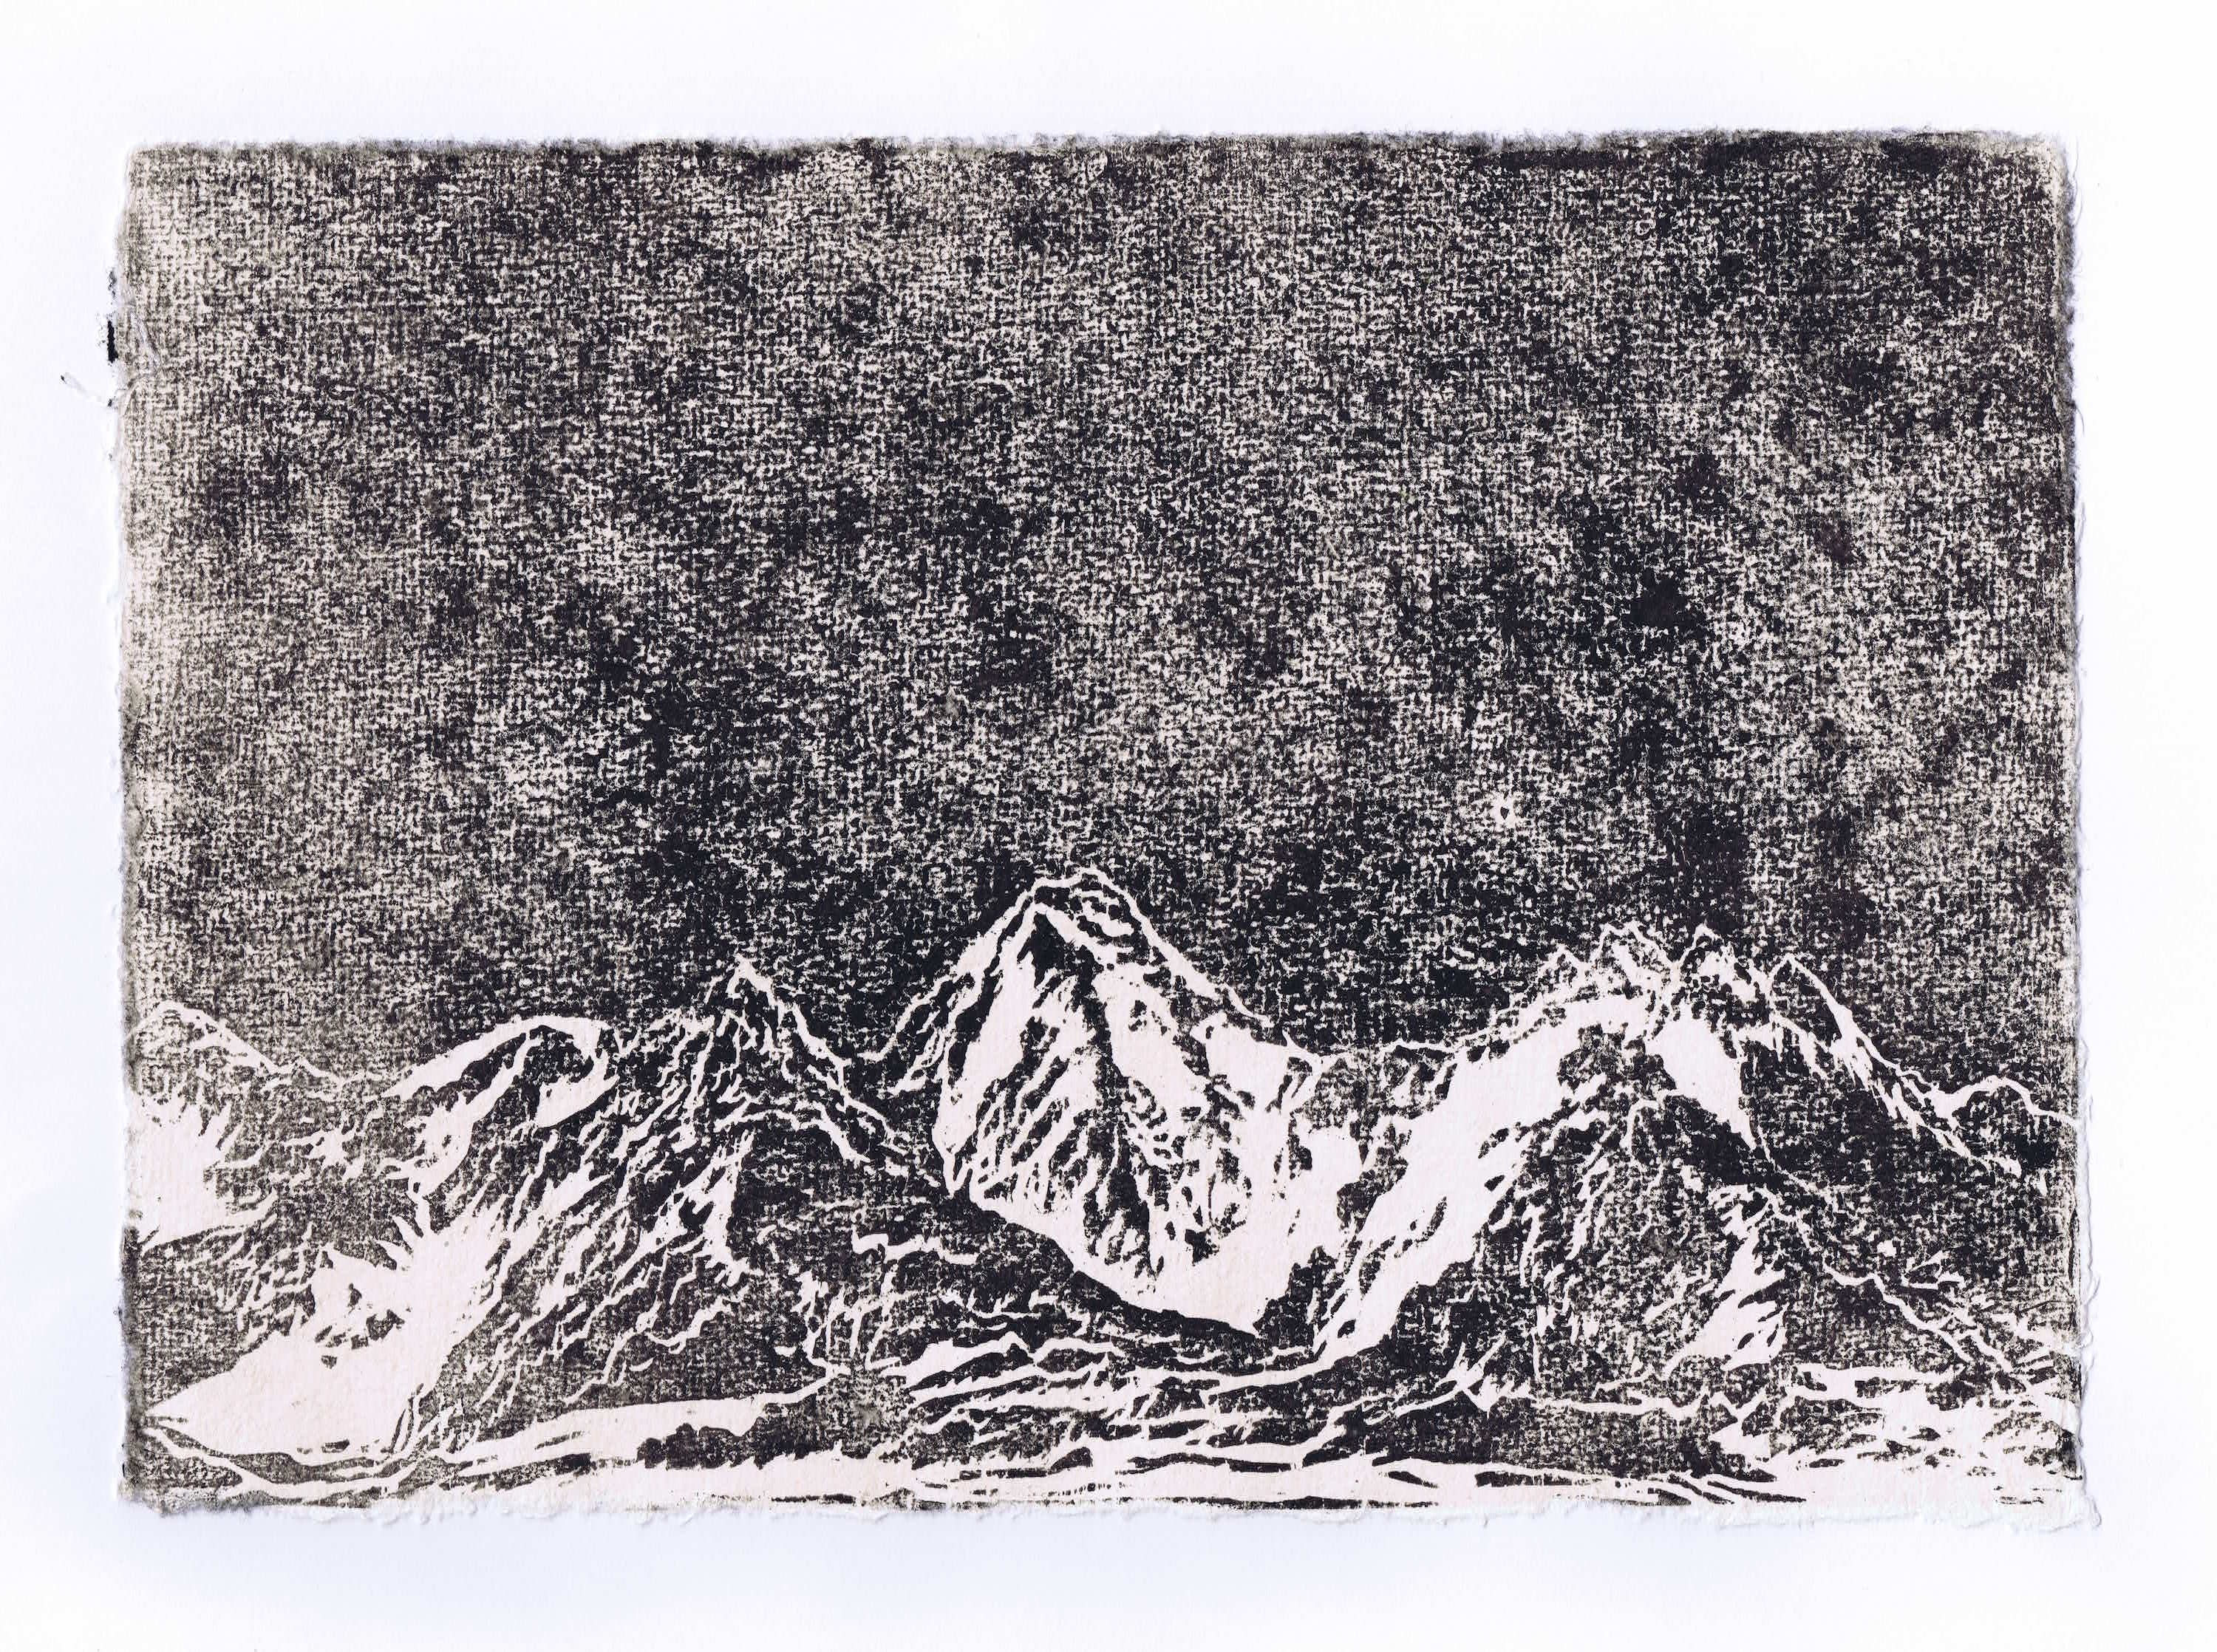 GASHERBRUM I 2016<br>Woodcut on handmade paper 7.9 x 11.8 in. <br>© Kai Luther|VG Bild-Kunst, Bonn 2017